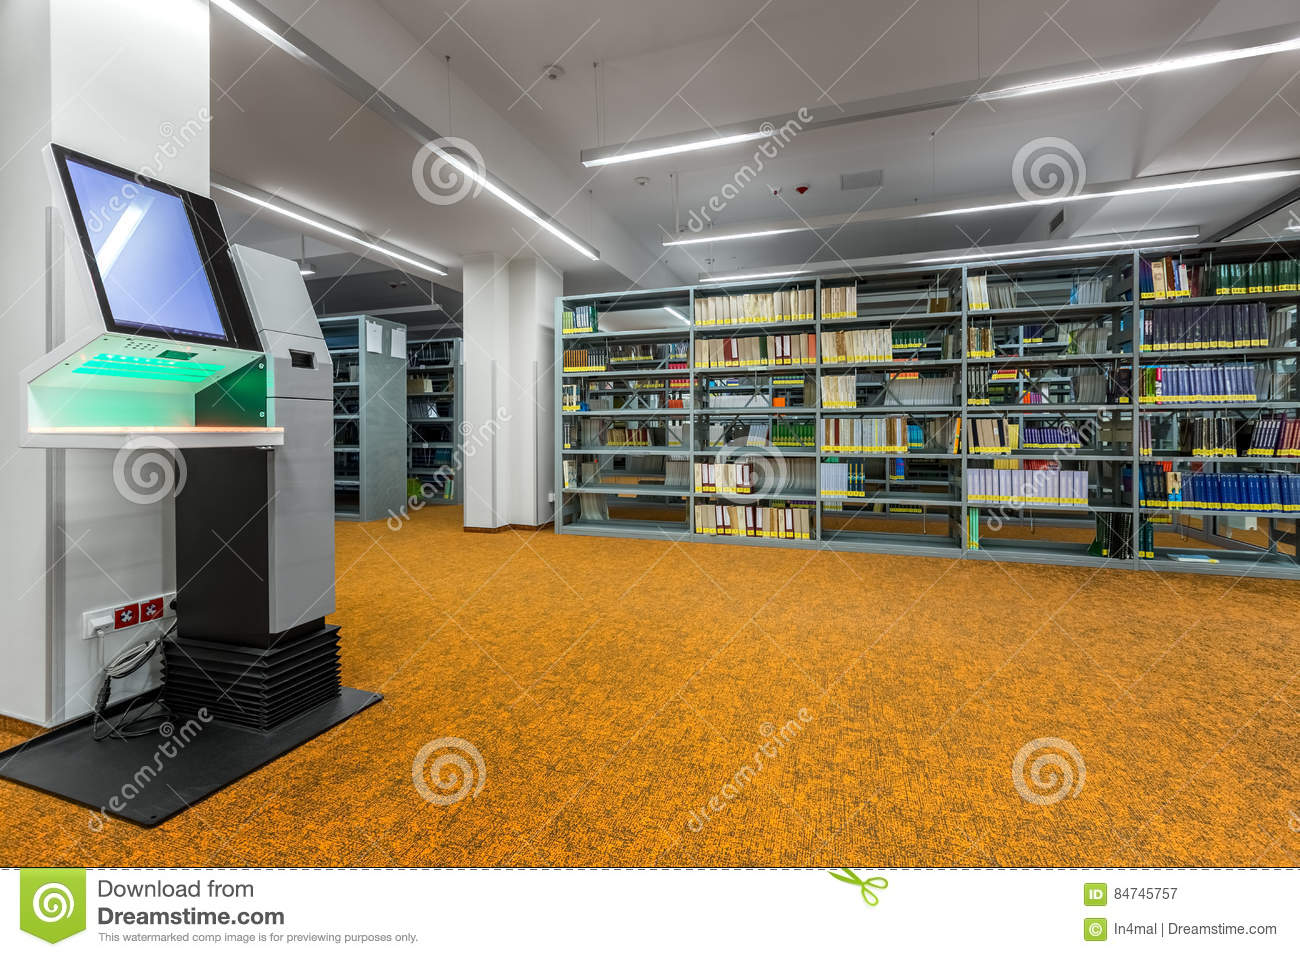 Library Interior With Modern Technology Stock Image - Image ...